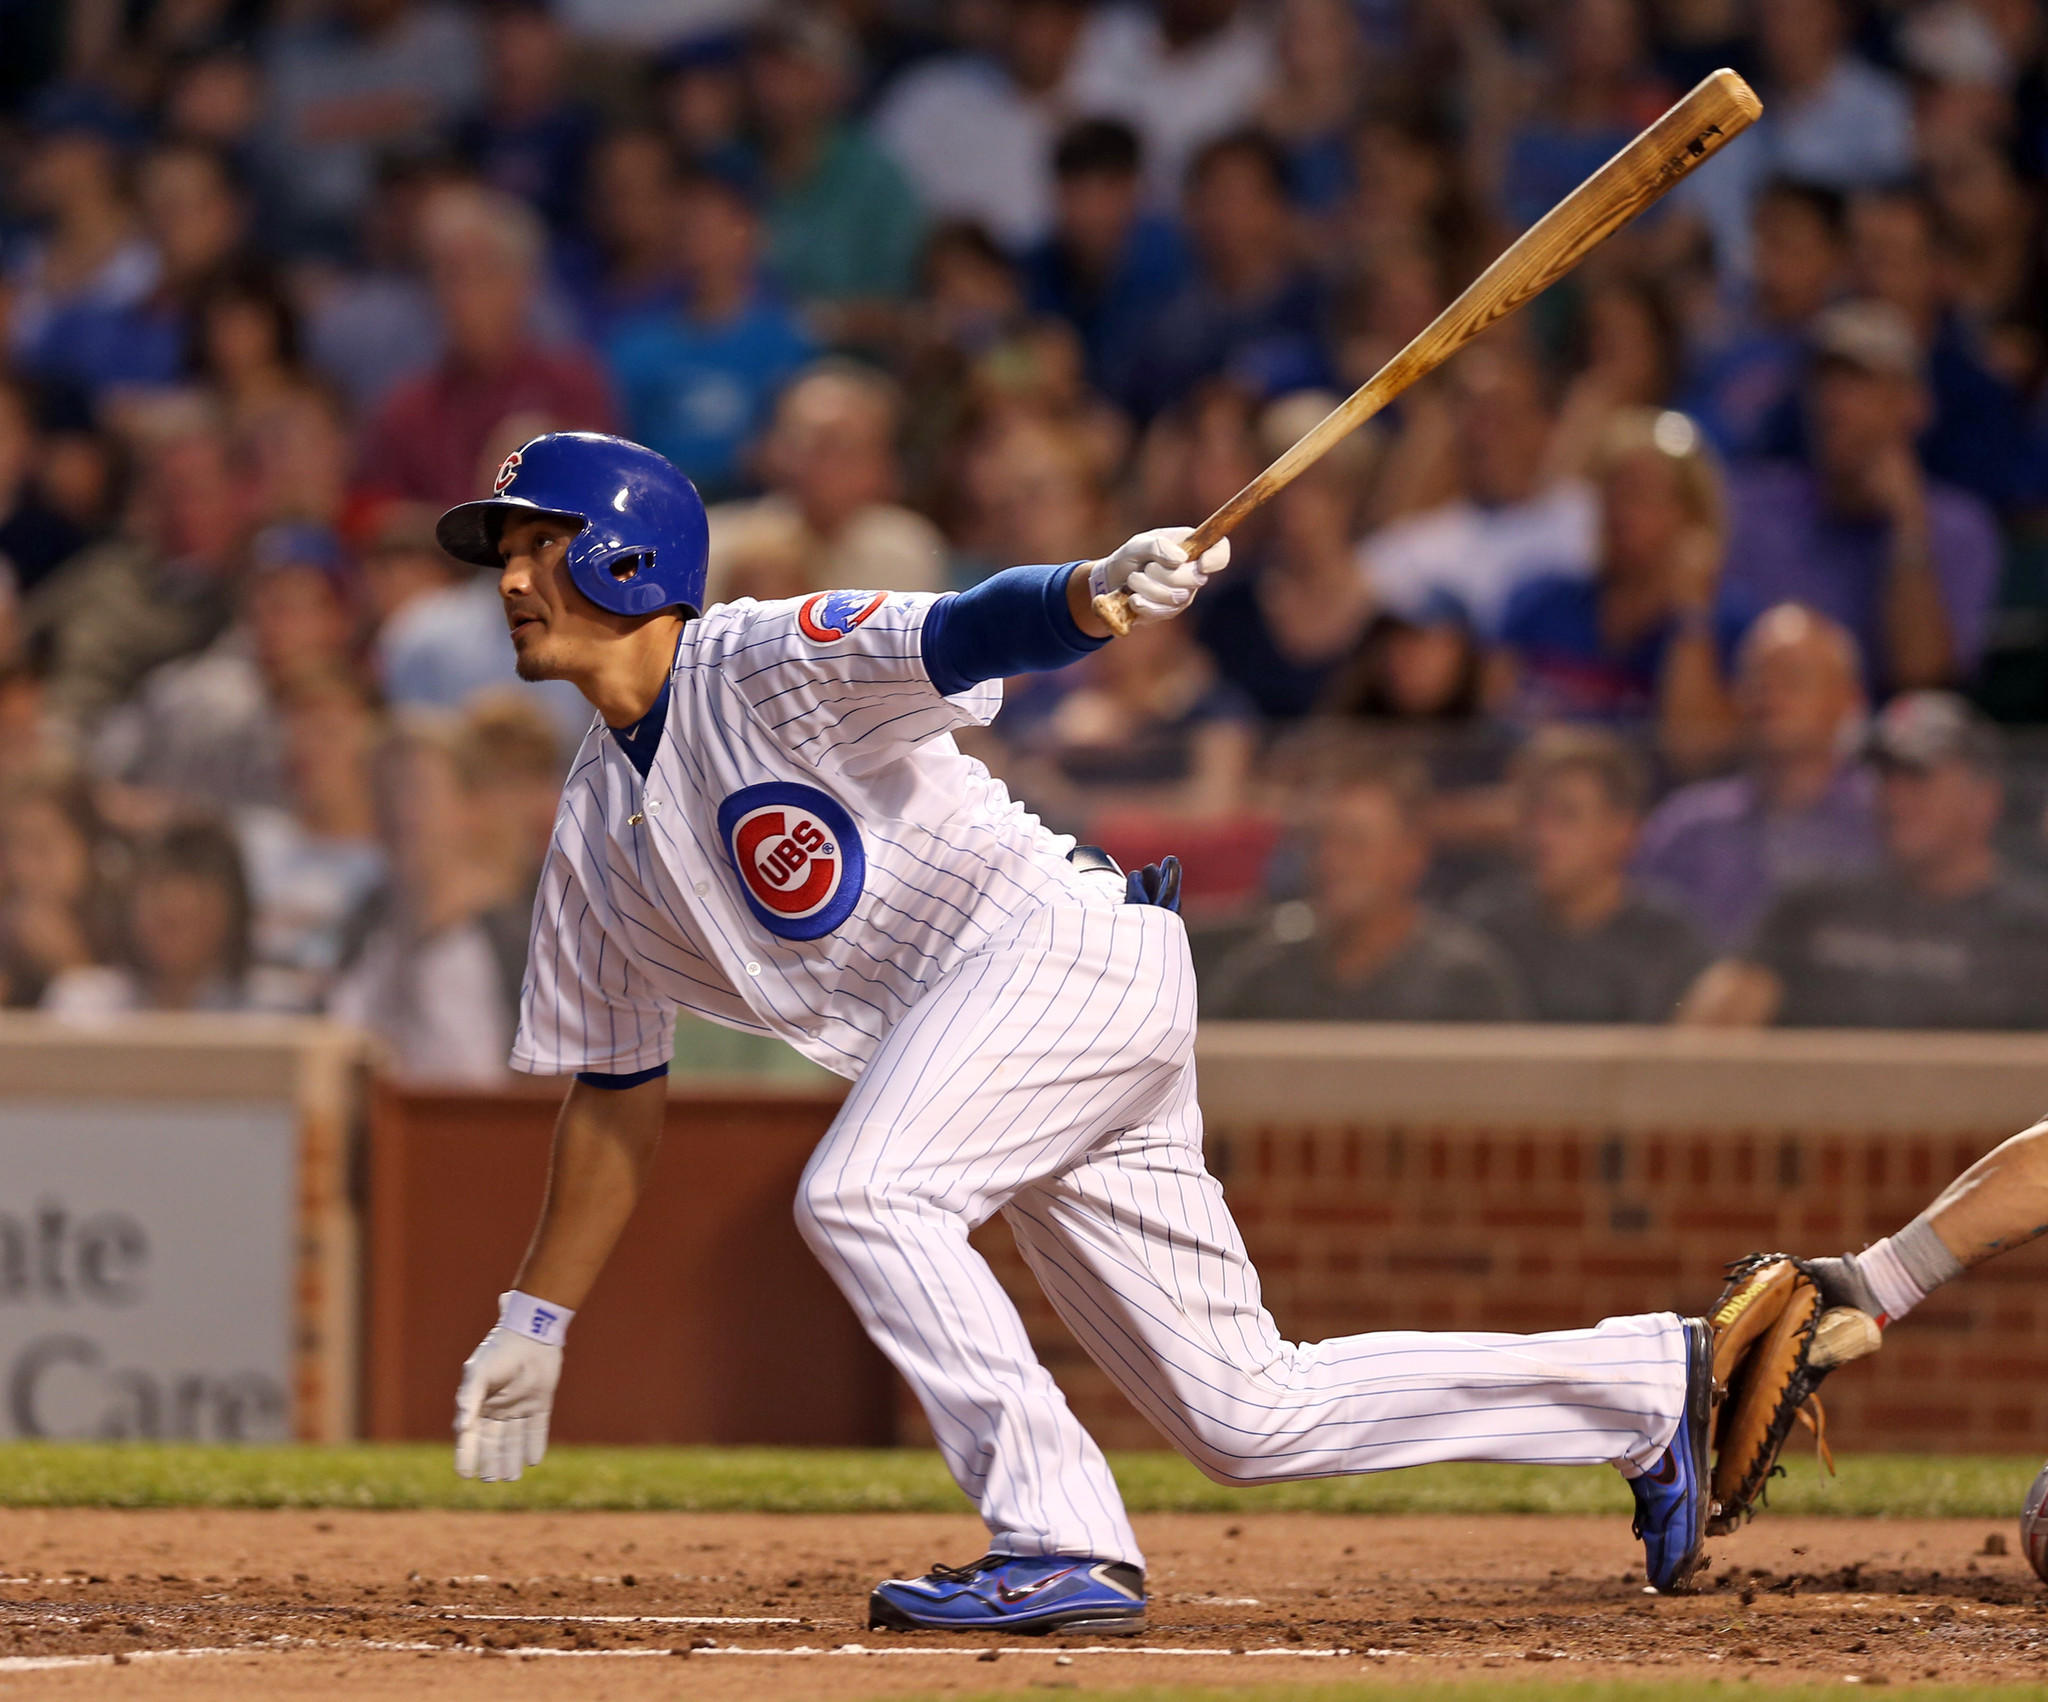 Chicago Cubs' Darwin Barney singles in 3rd inning against Washington Nationals' Jordan Zimmermann during MLB game at Wrigley Field in Chicago on Monday, Aug. 19, 2013.